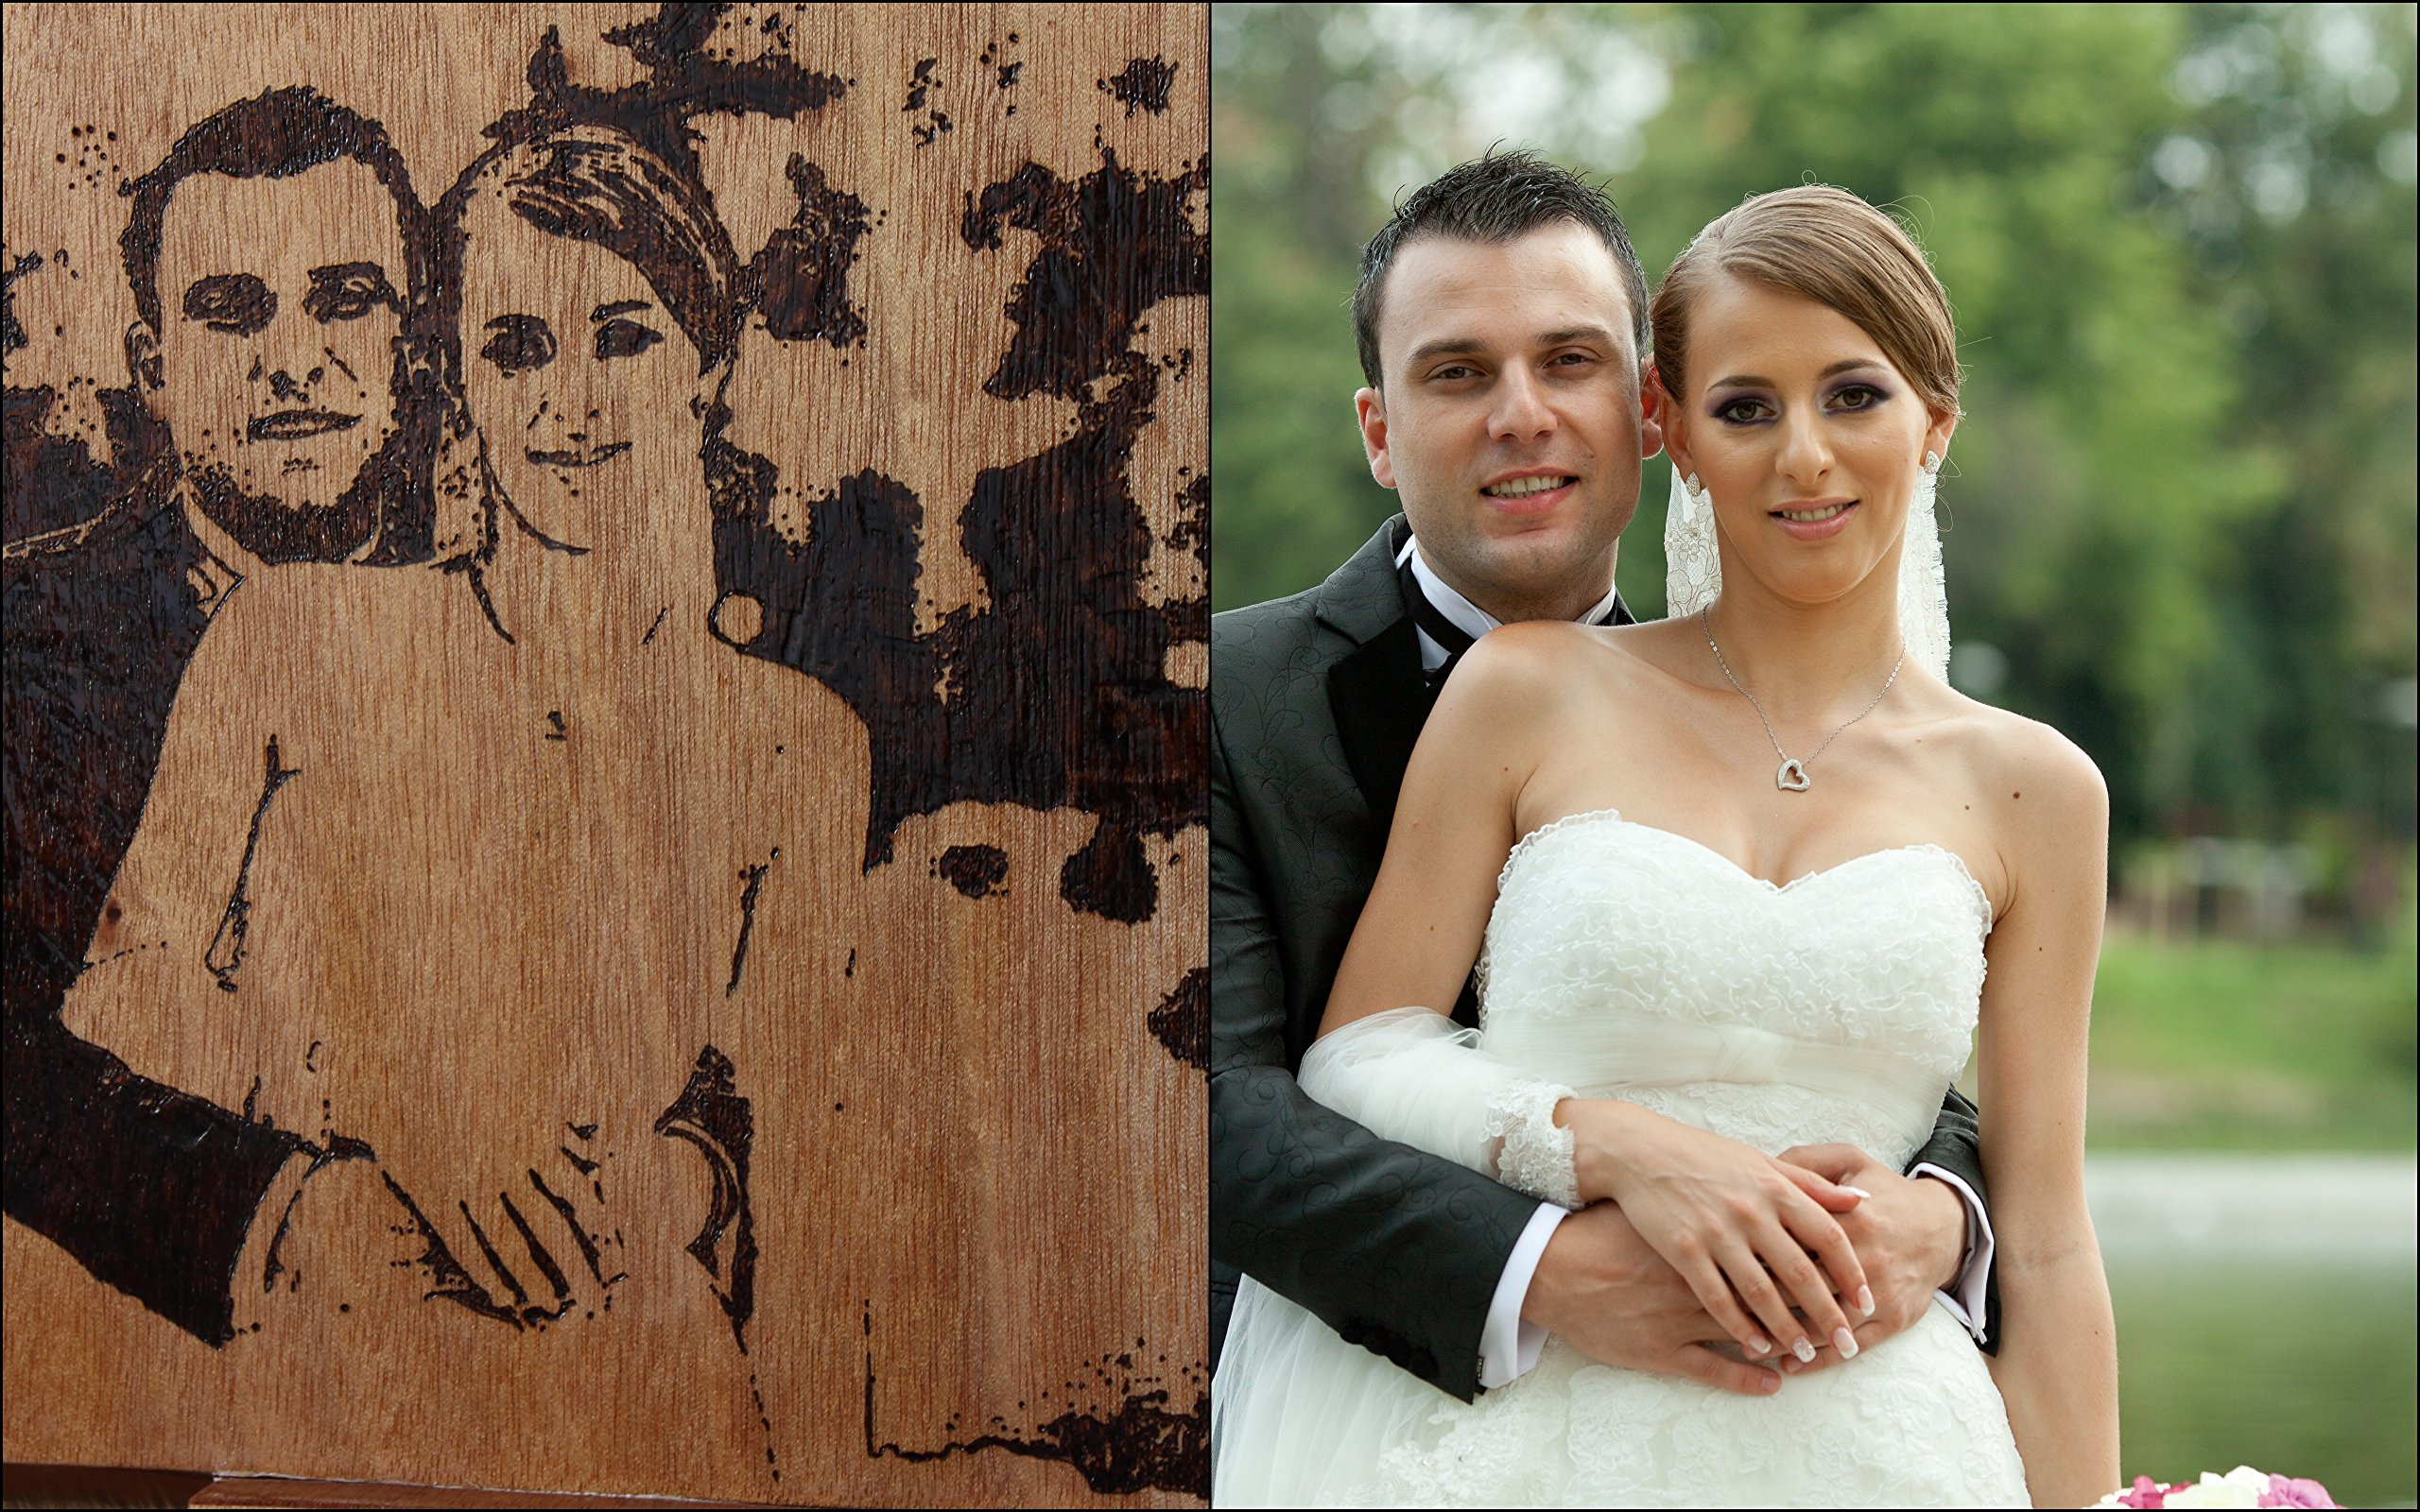 Custom Wedding Album ~ Bride Groom image in wood book ~ Unique Anniversary gift - Engagement present - Gay Lesbian Union family heirloom